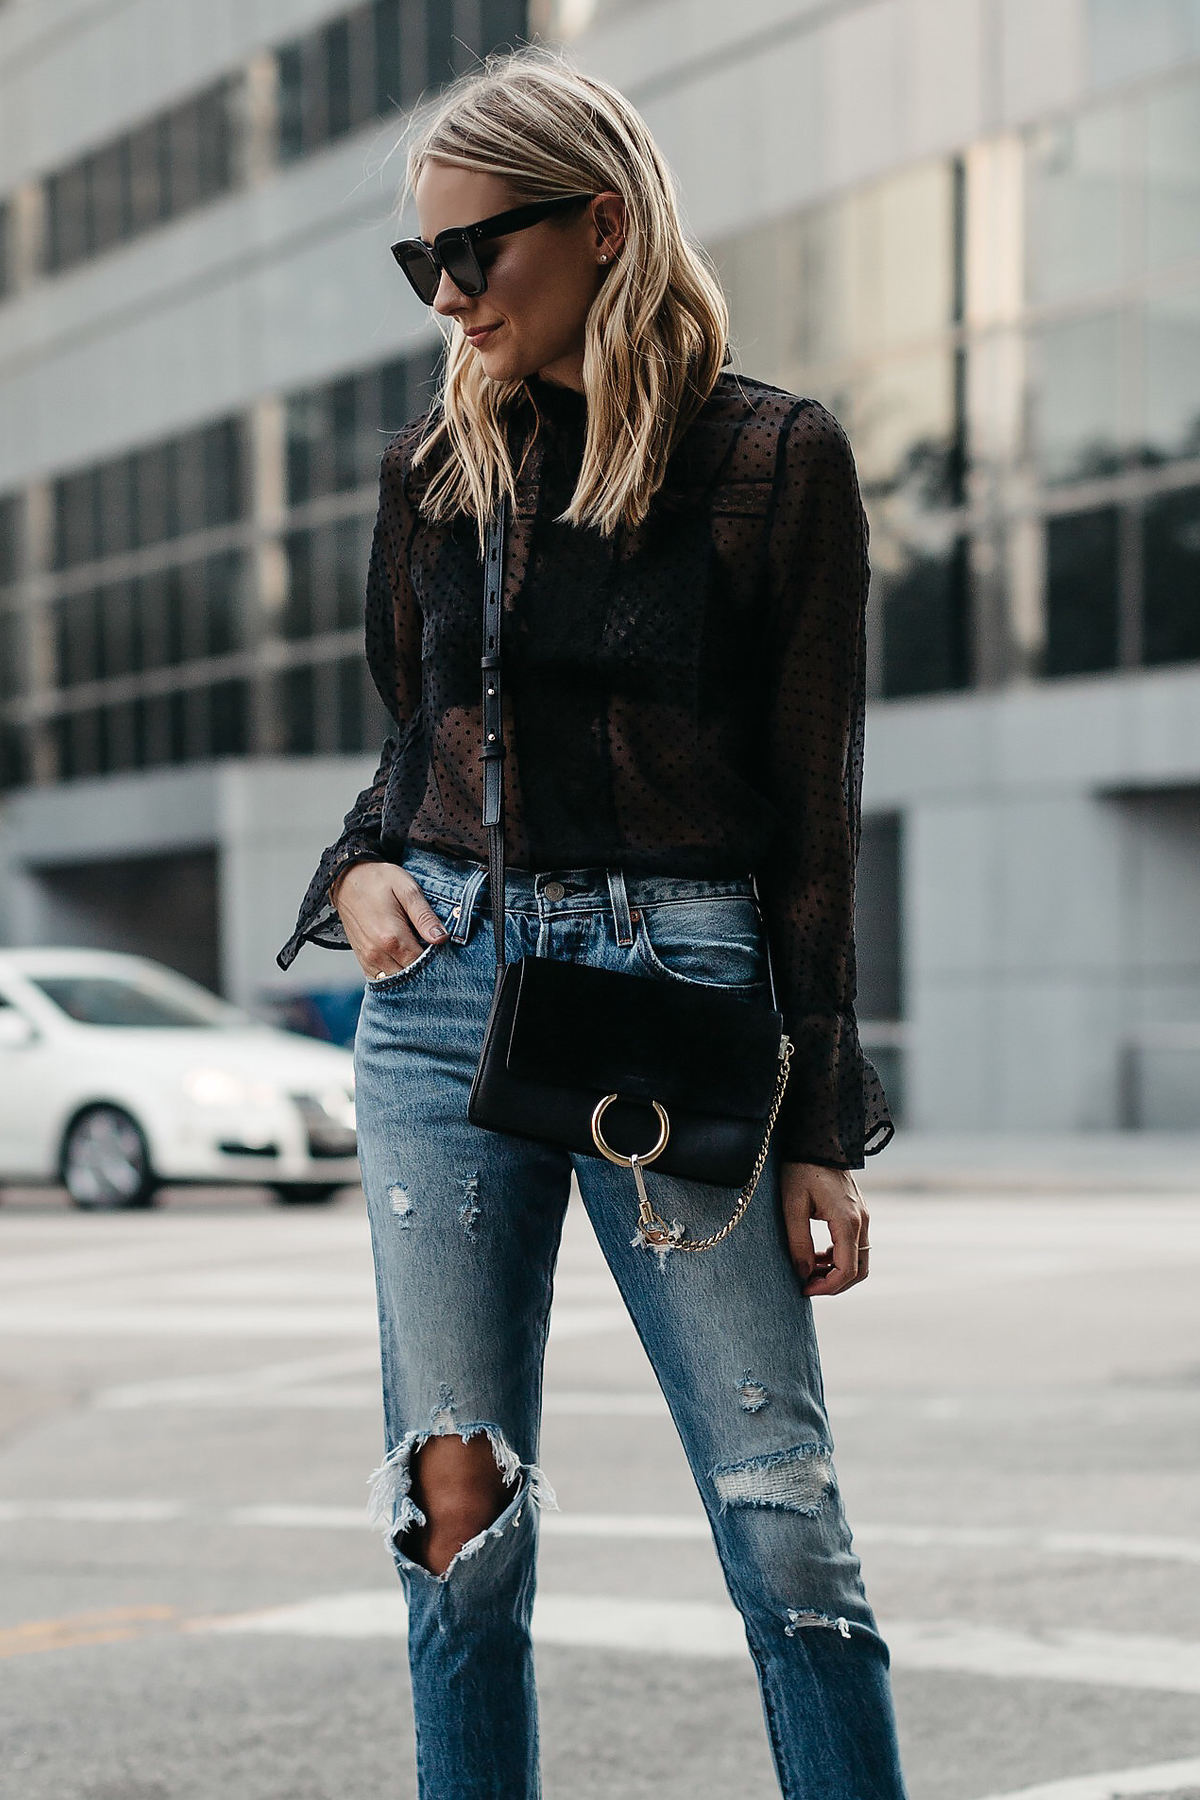 Blonde Woman Wearing Anine Bing Black Lace Top Chloe Faye Black Handbag Levis Denim Ripped Jeans Fashion Jackson Dallas Blogger Fashion Blogger Street Style